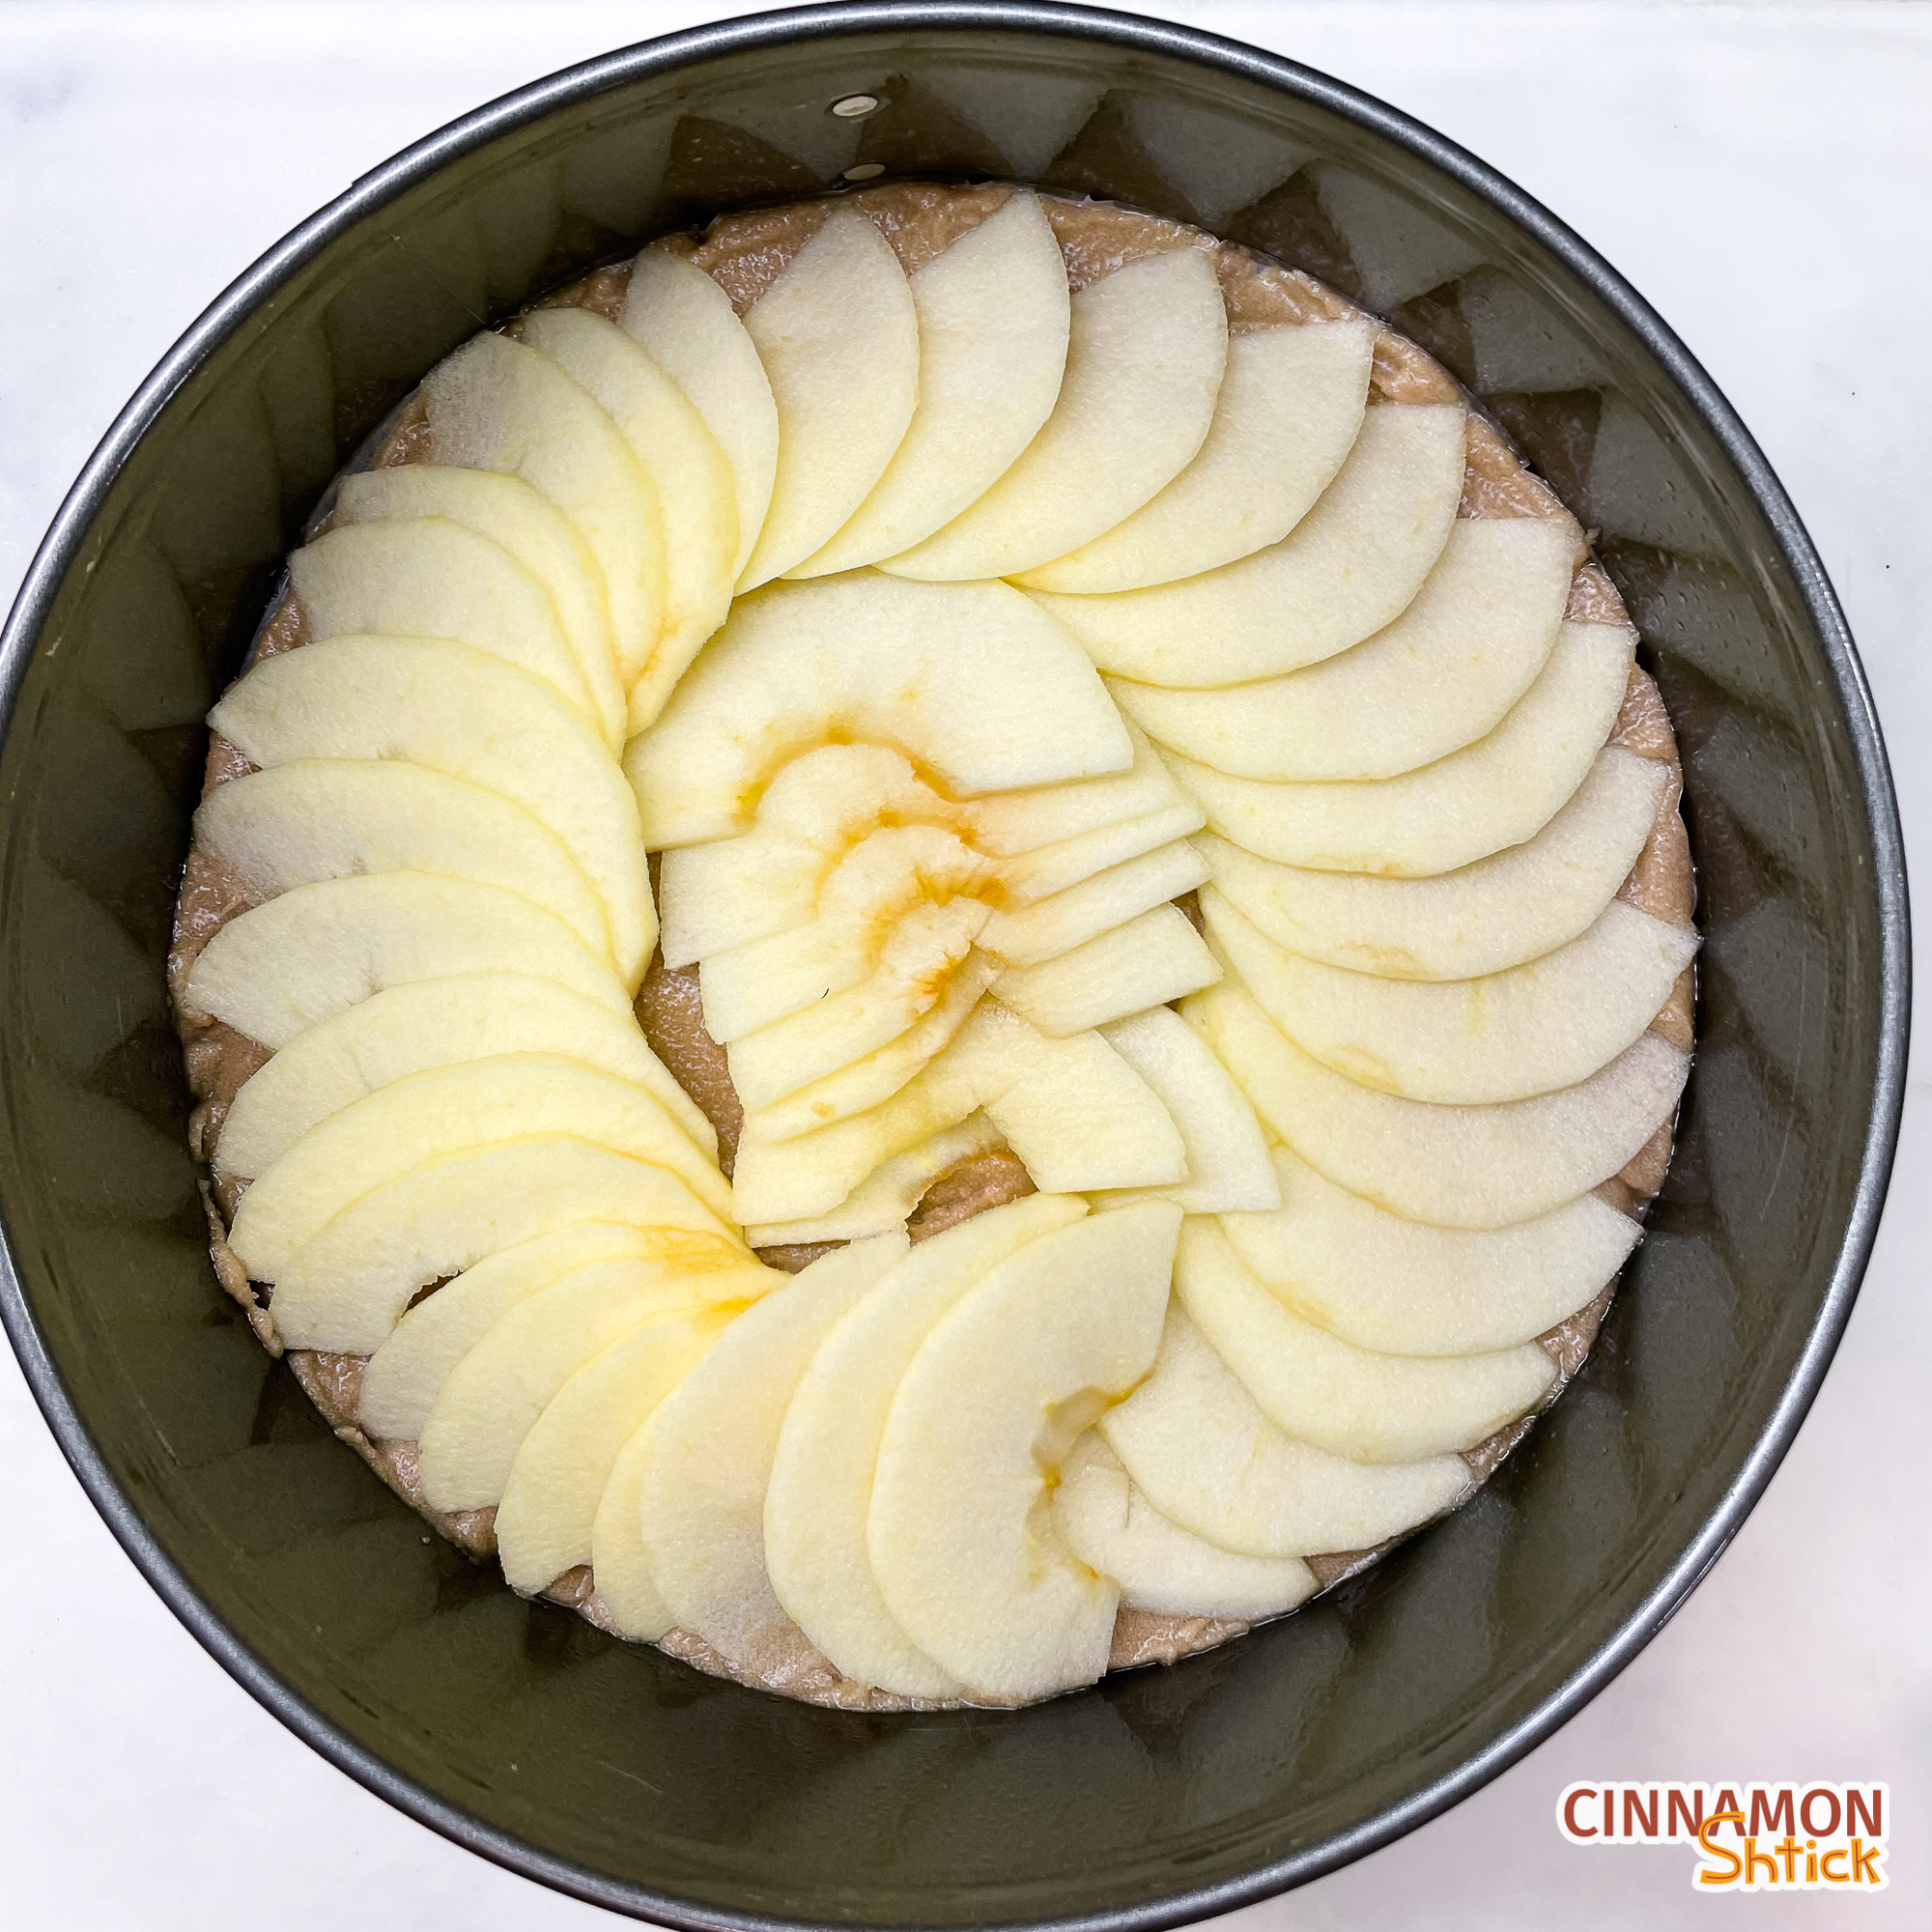 apples arranged decoratively in the springform pan